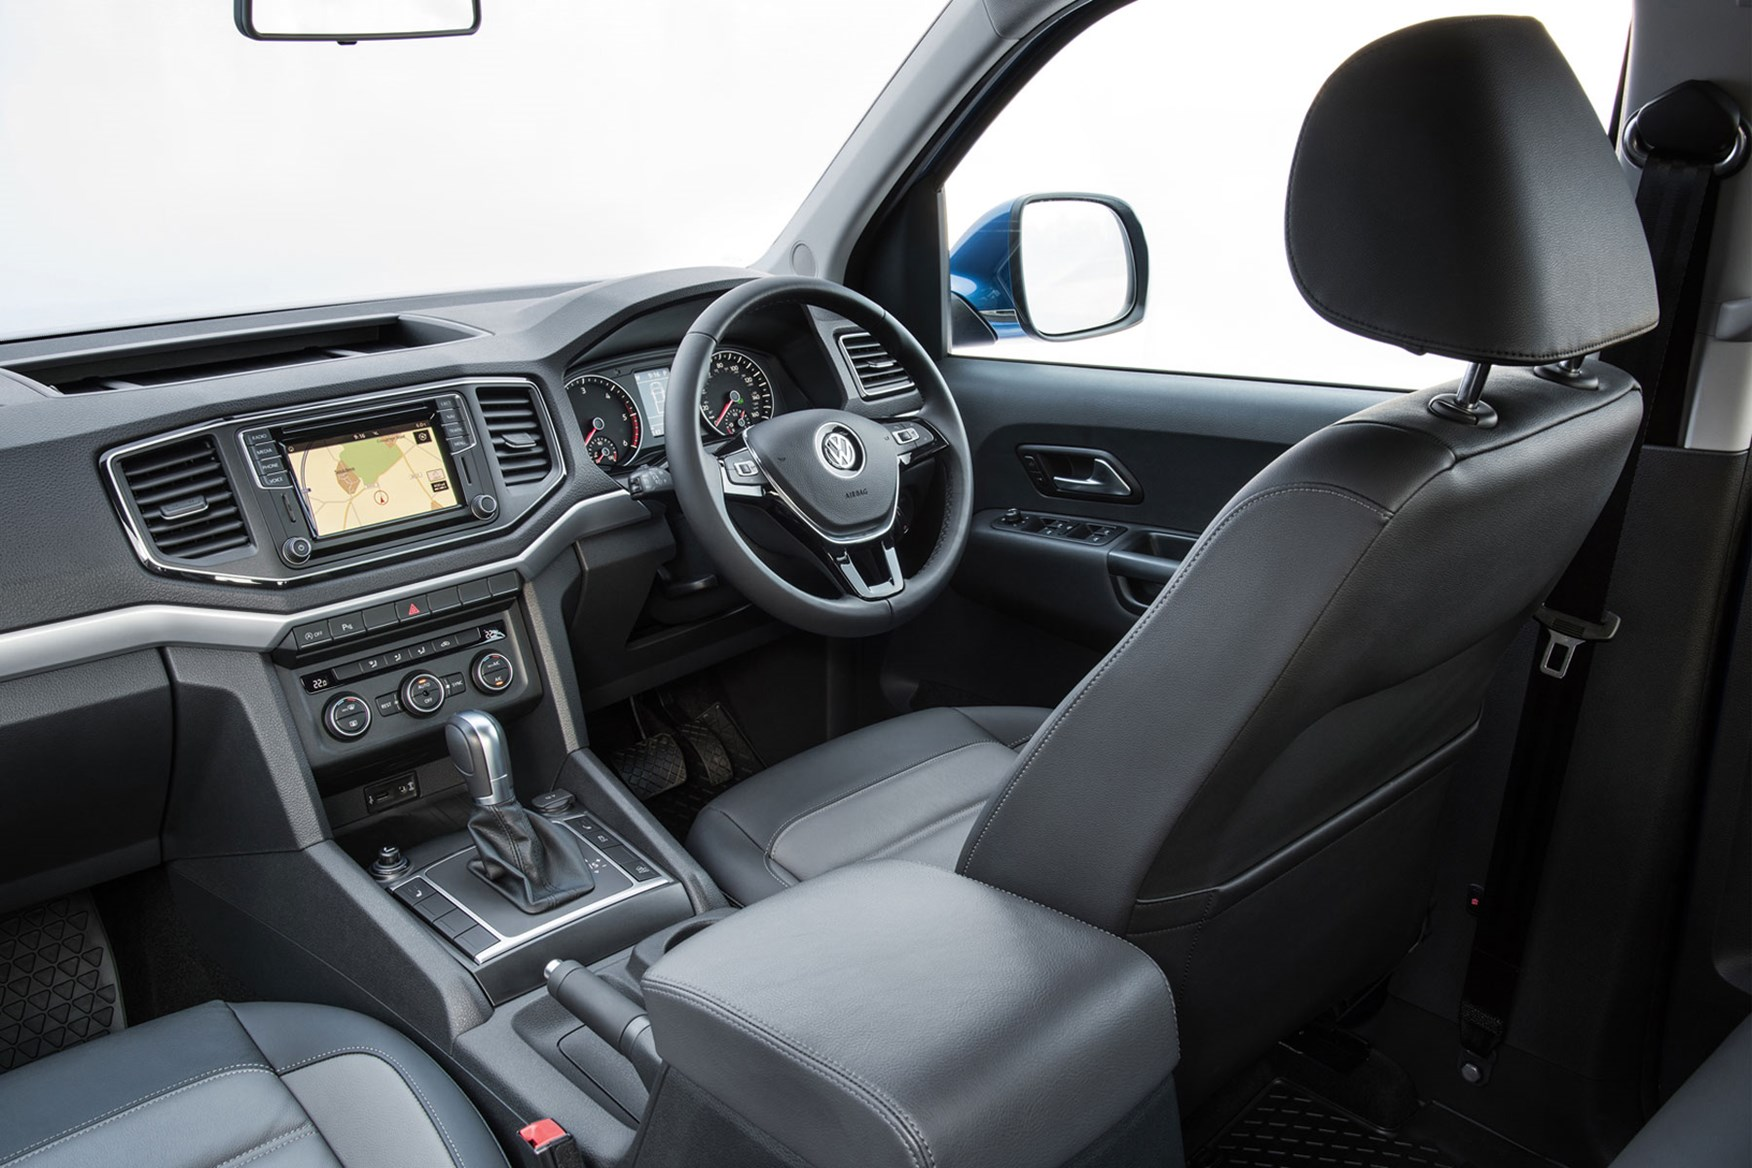 VW Amarok V6 Aventura 224hp review - cab interior